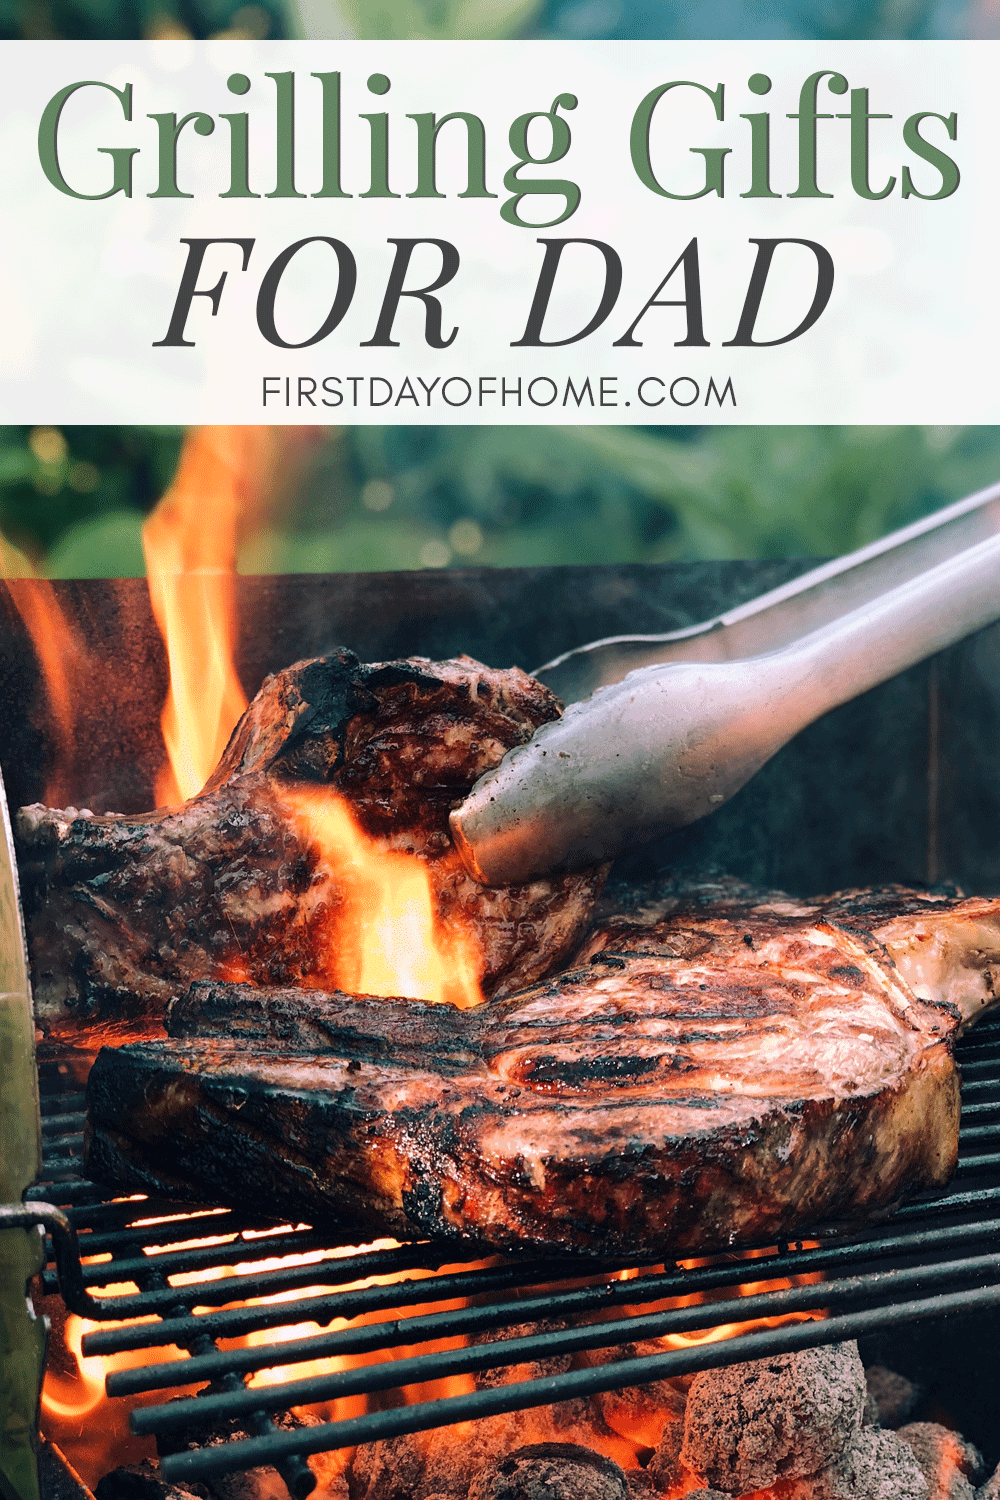 Grilling gifts for dads